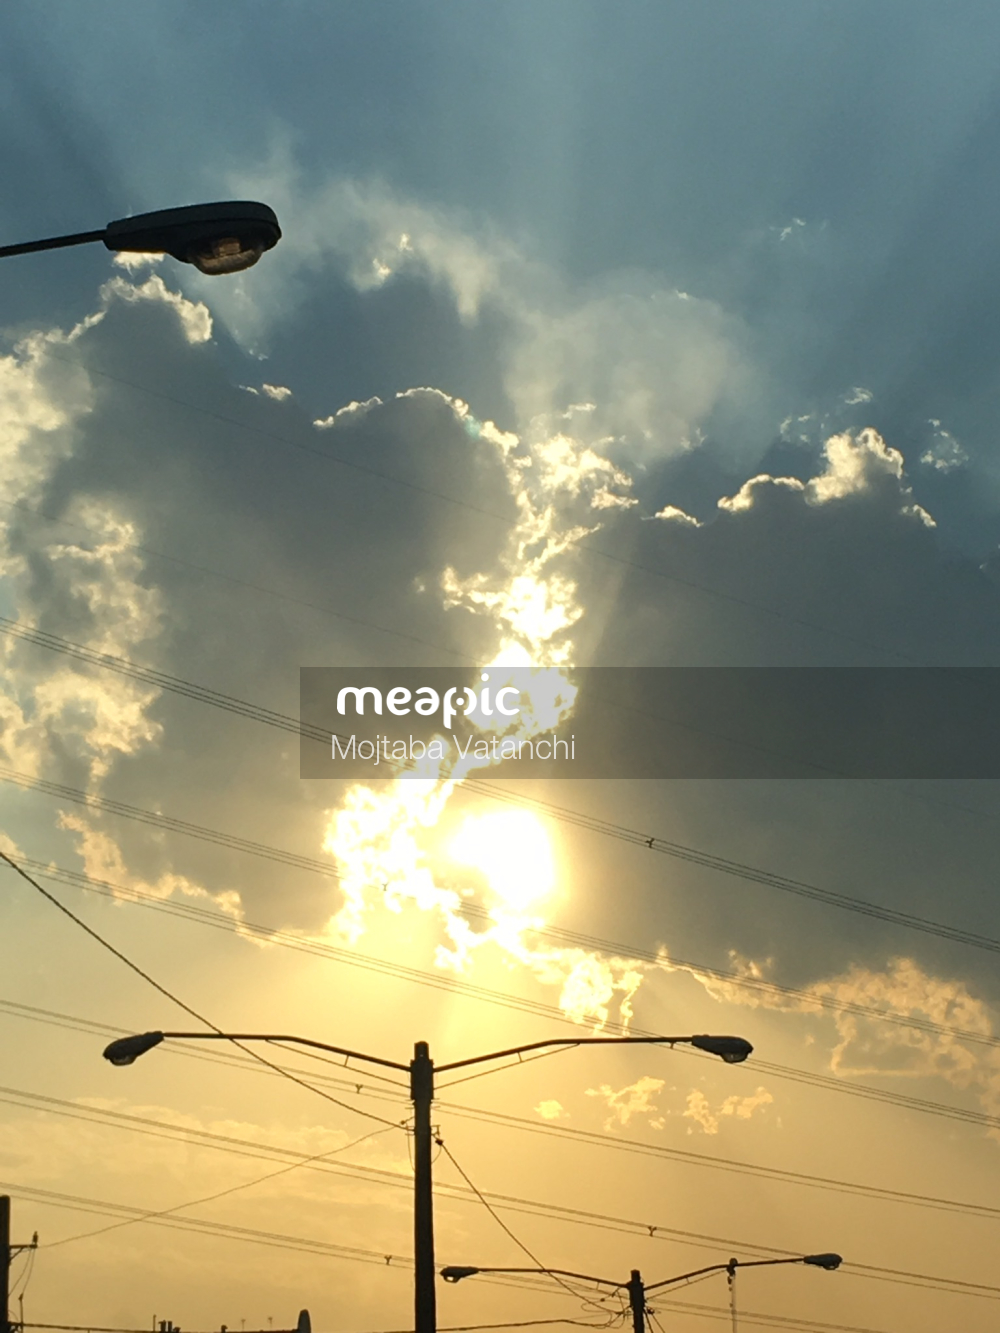 Traffic Light On A Cloudy Day Stock Photo · Meapic